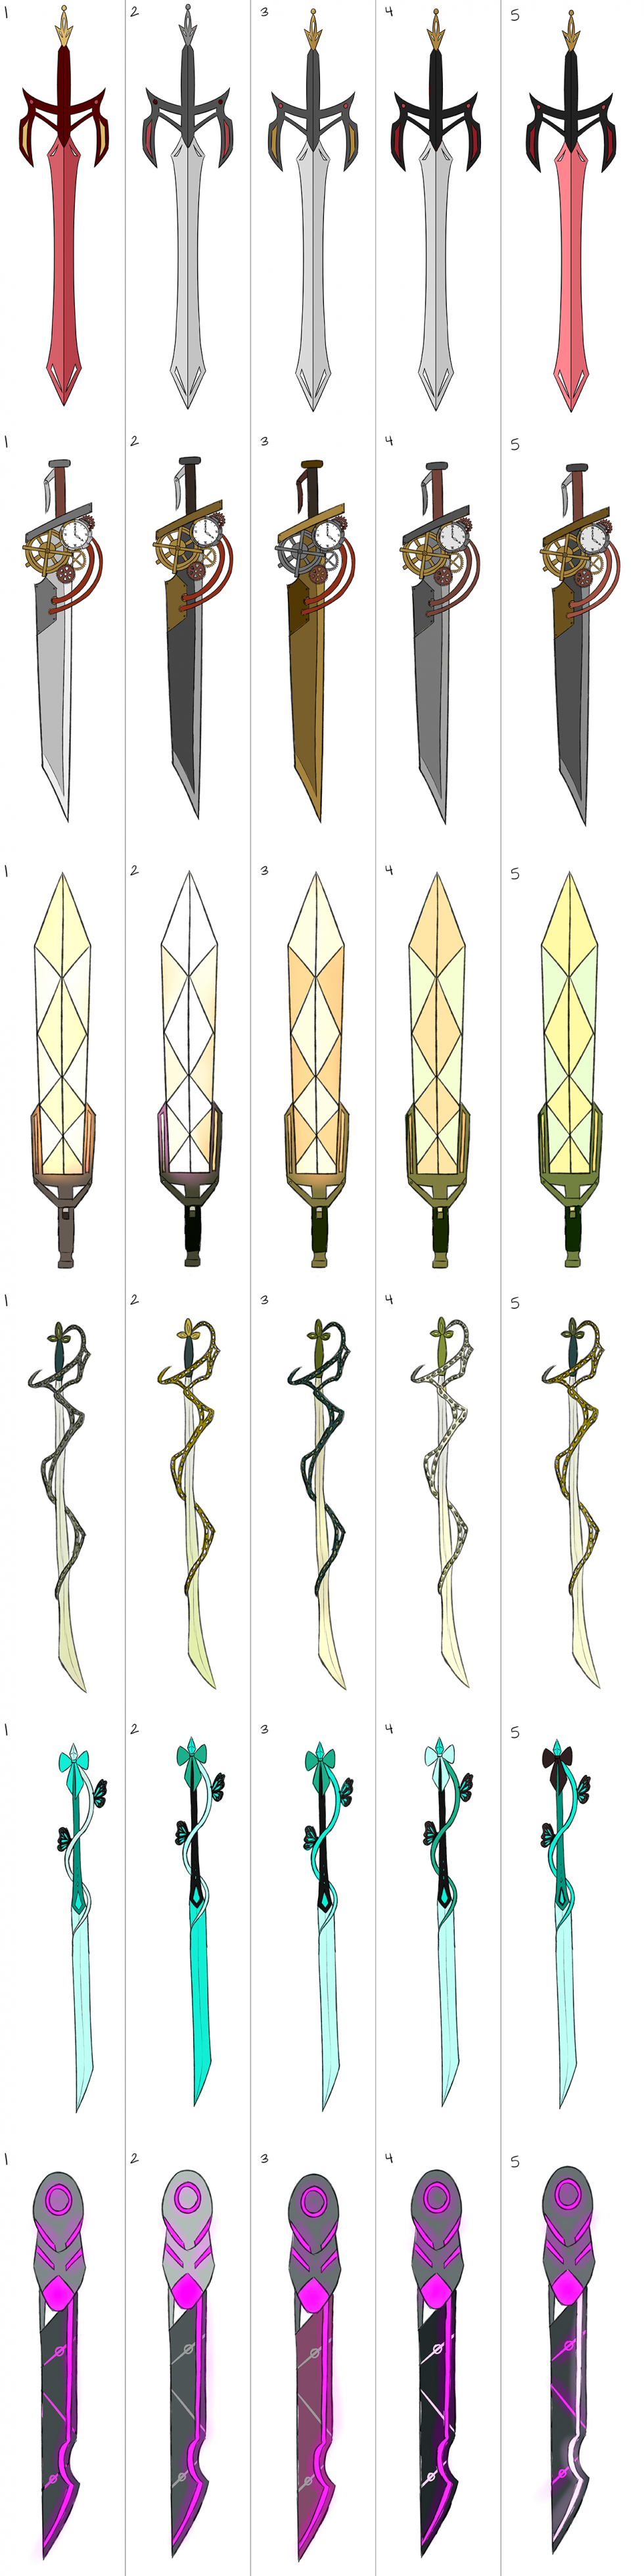 Different sword color palettes for each character based on a specific genre (Medieval/Steampunk/Sci-Fi/Ceremonial/Magical Girl/Cyberpunk)